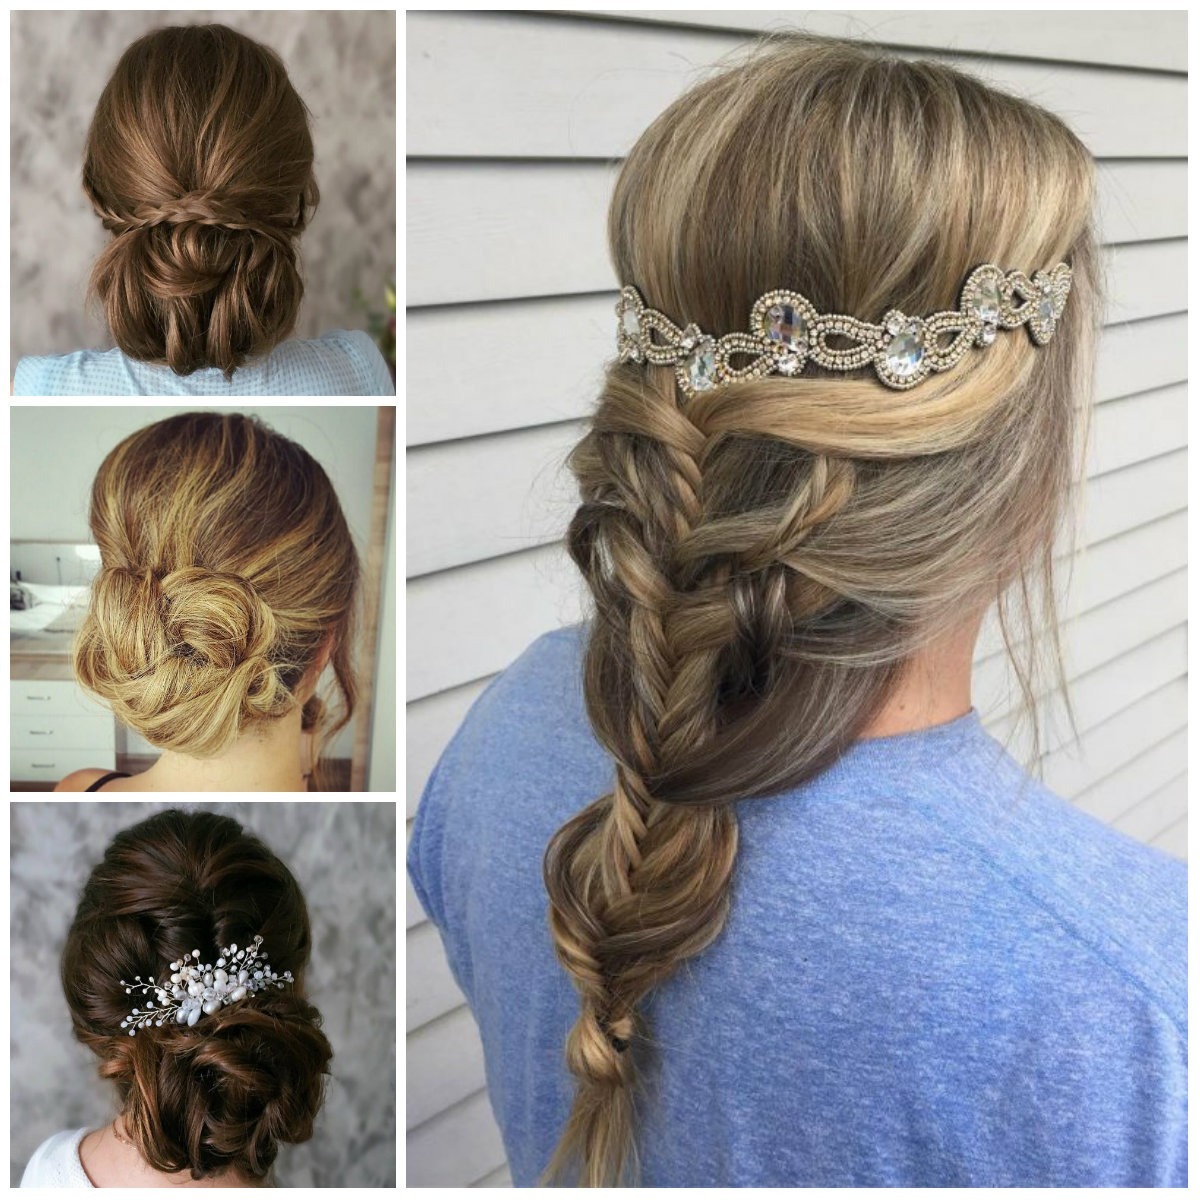 2017 Chic updos for long hair